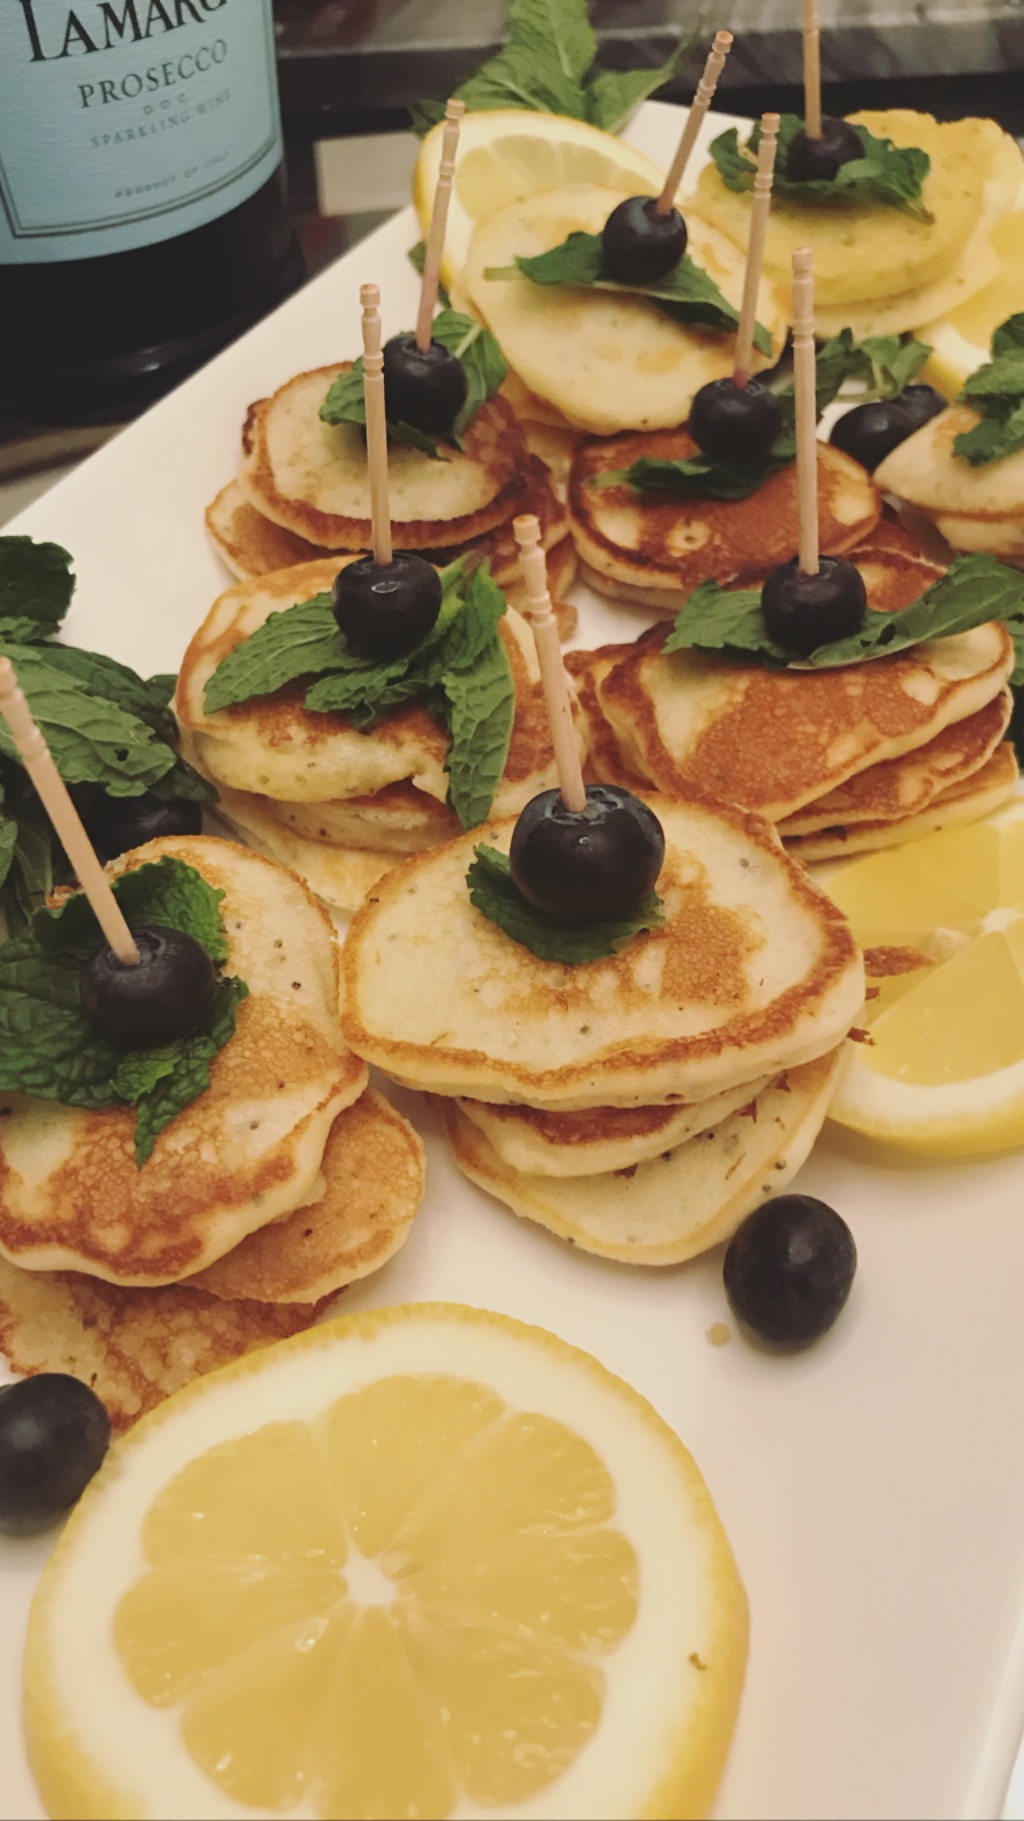 Lemon Poppy Seed Pancakes - Mini style! So cute and delicious!